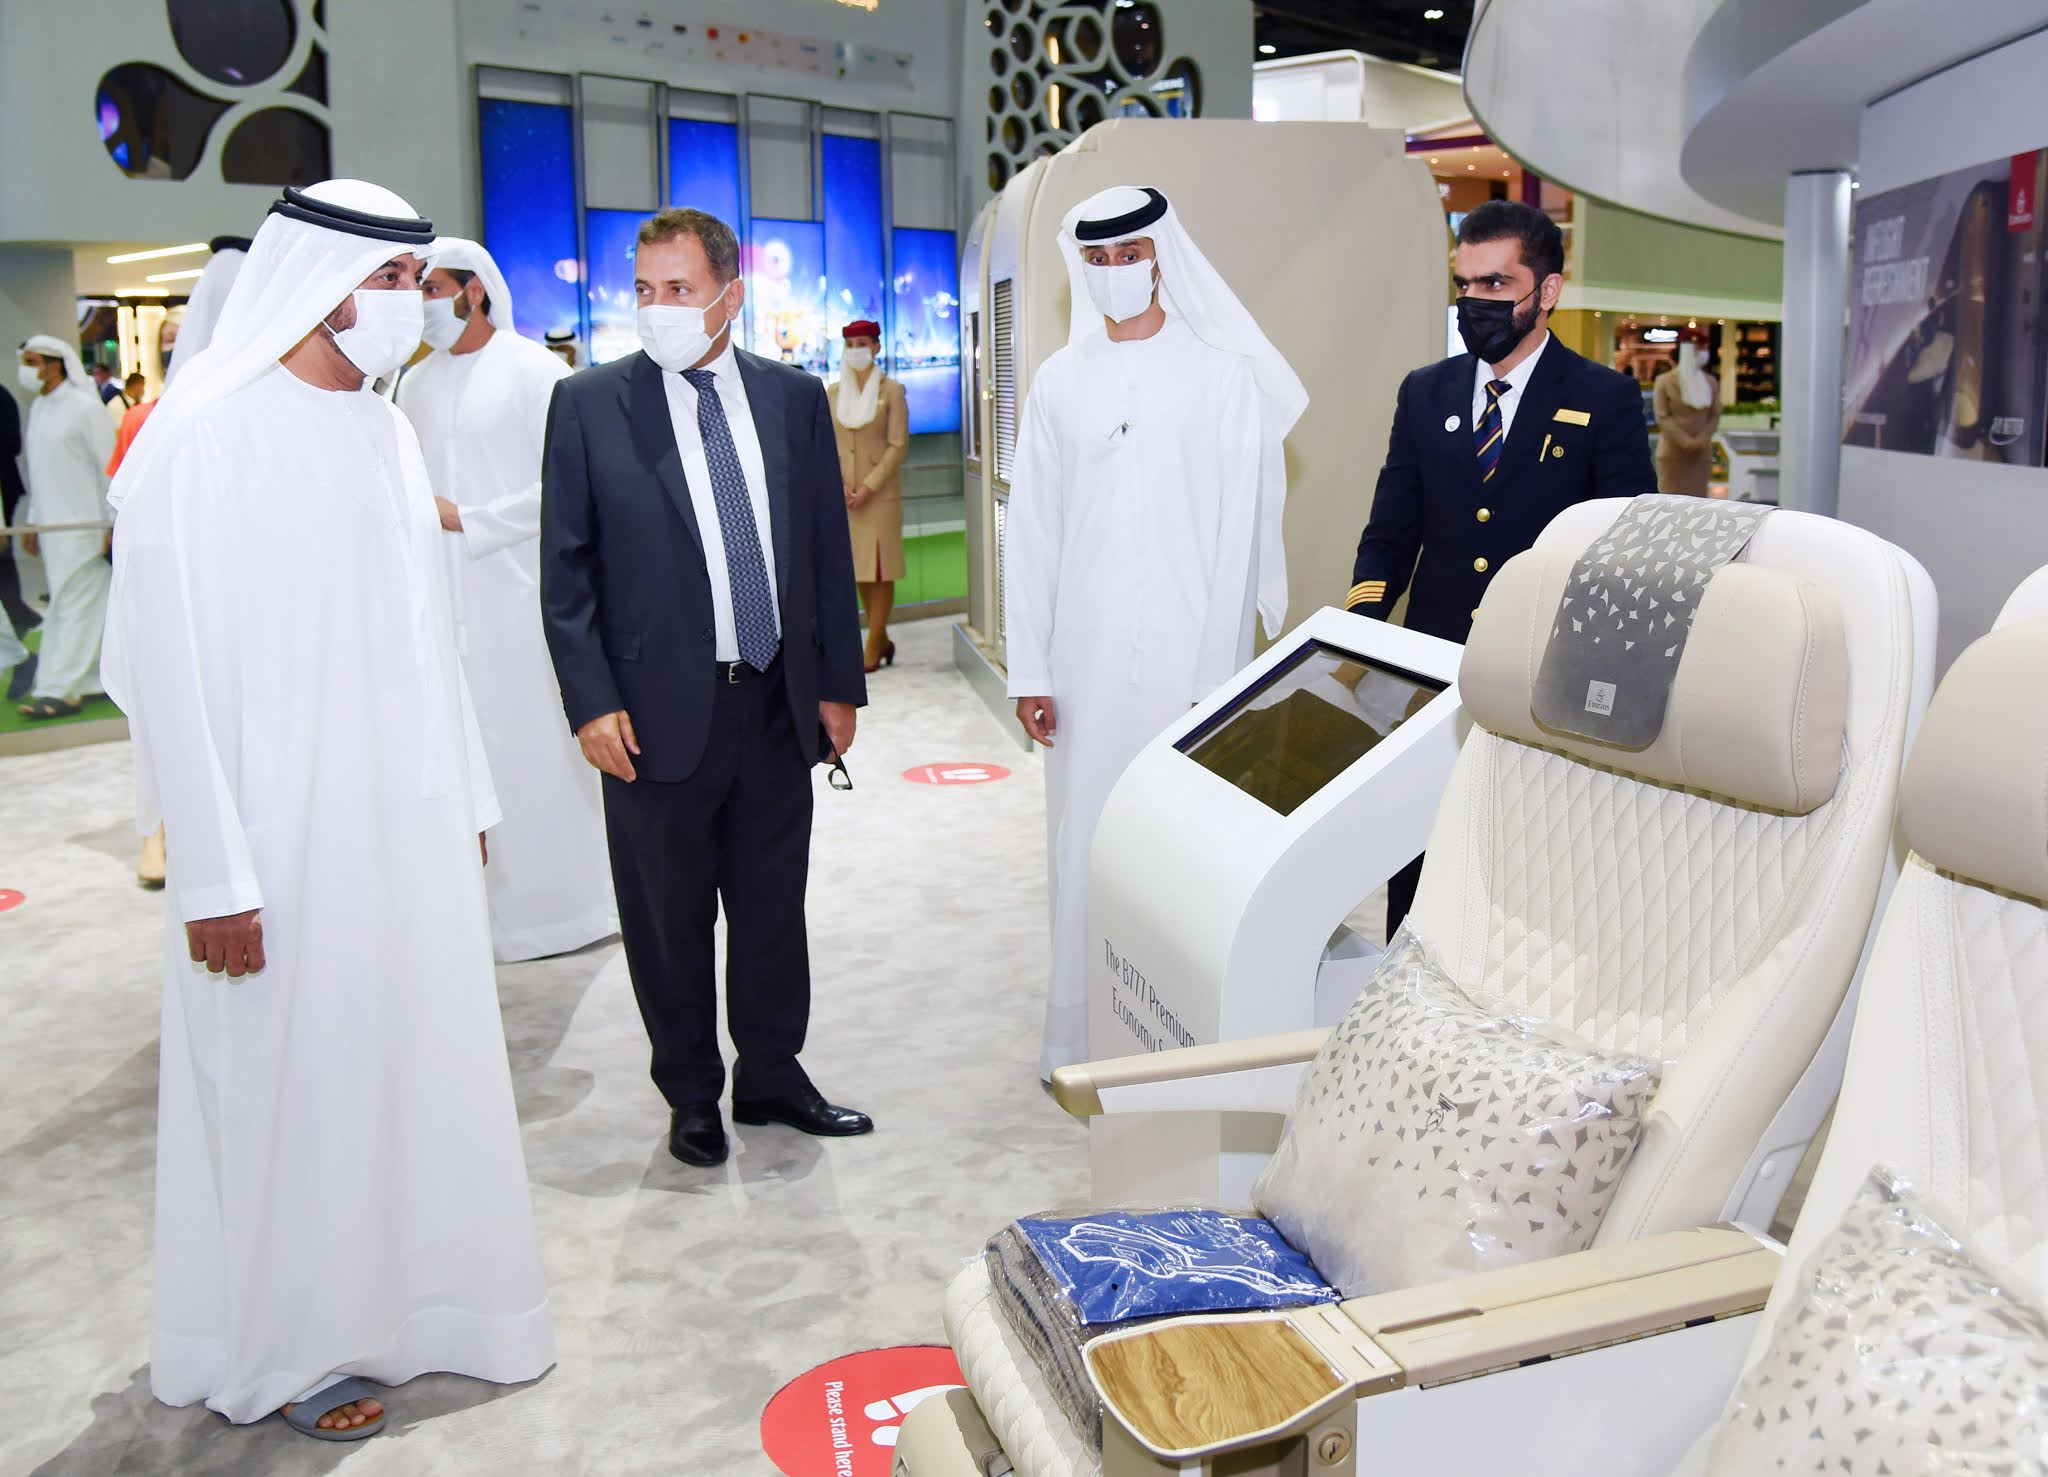 Emirates welcomed Sheikh Ahmed bin Saeed Al Maktoum to its ATM stand